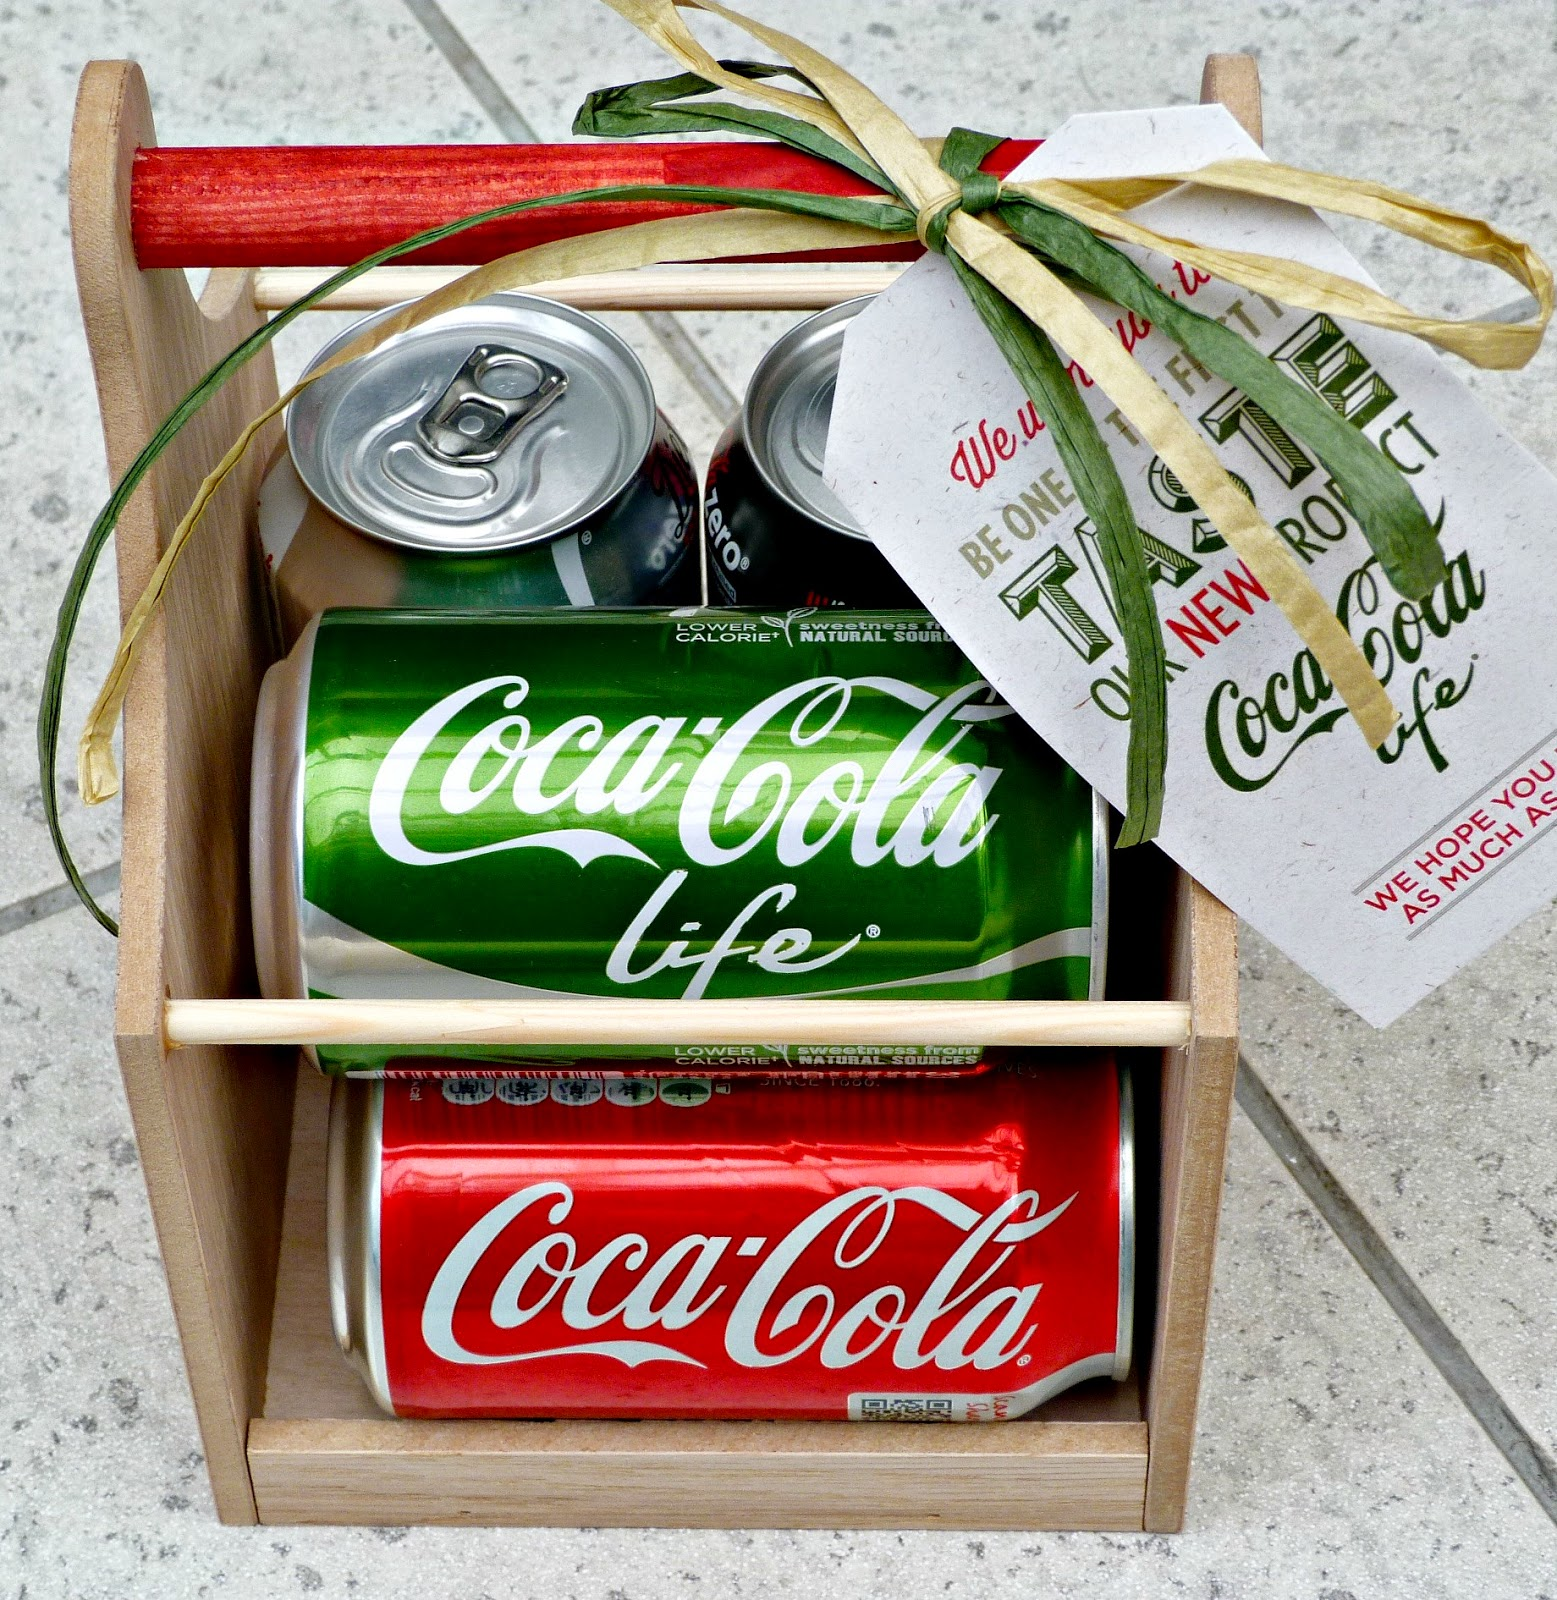 Coca-cola Life review